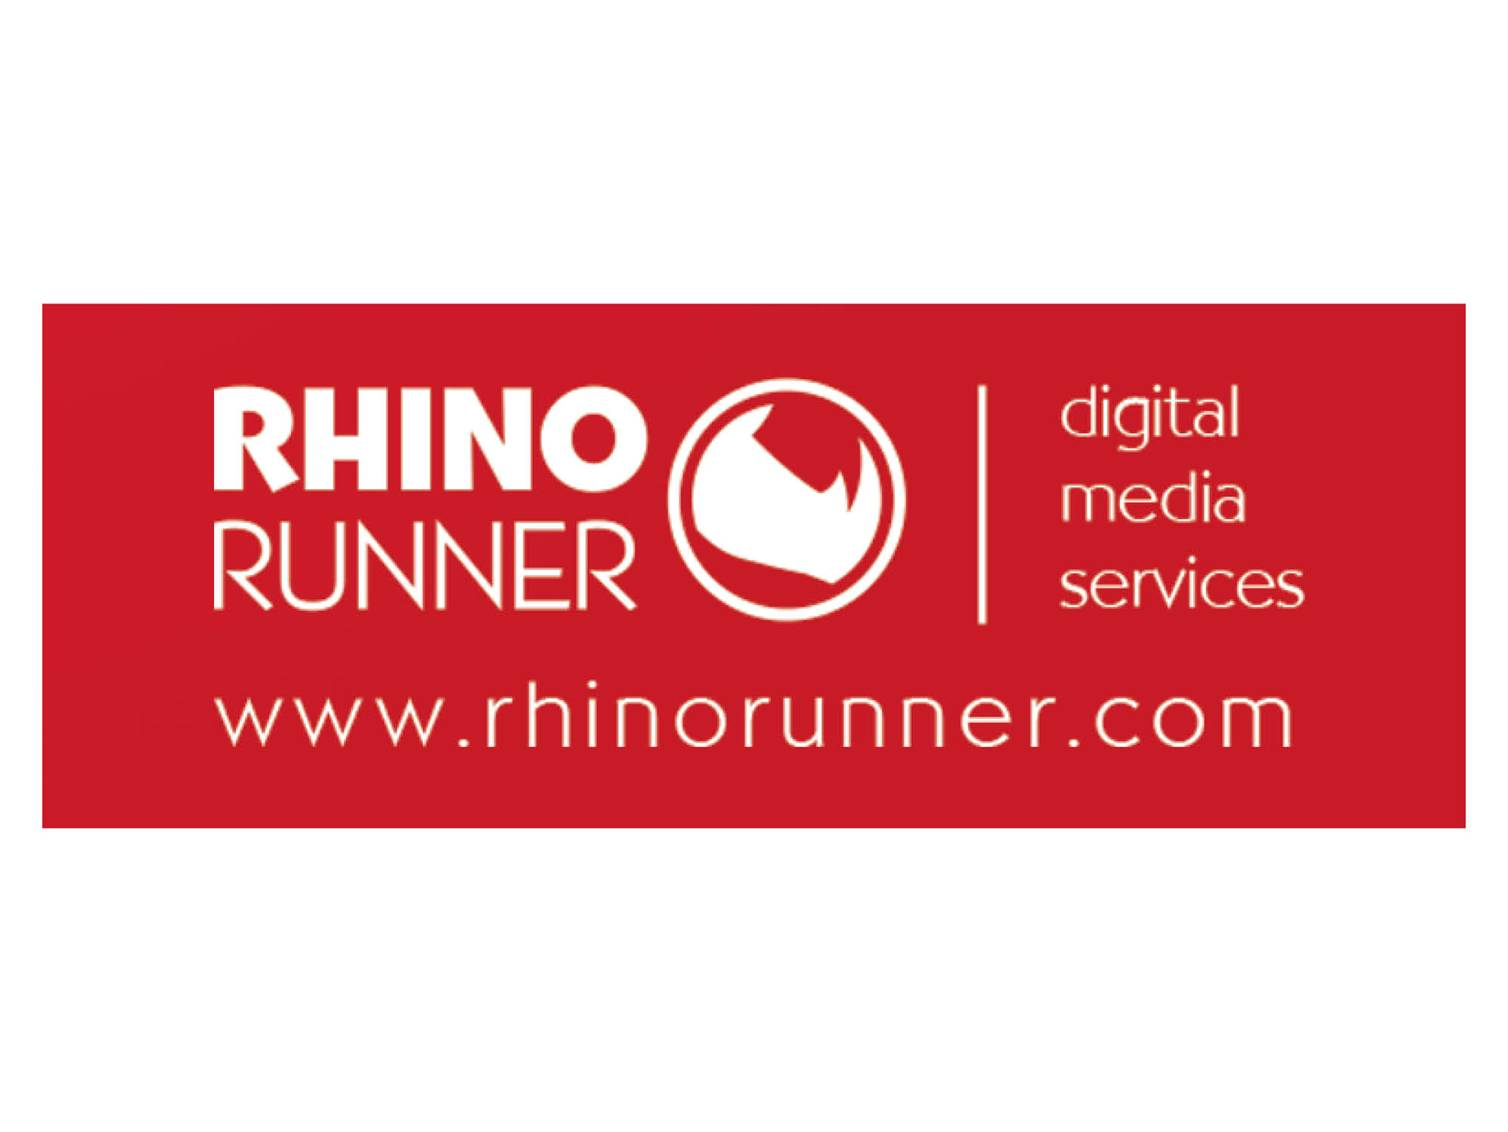 Rhino Runner Digital Media Service